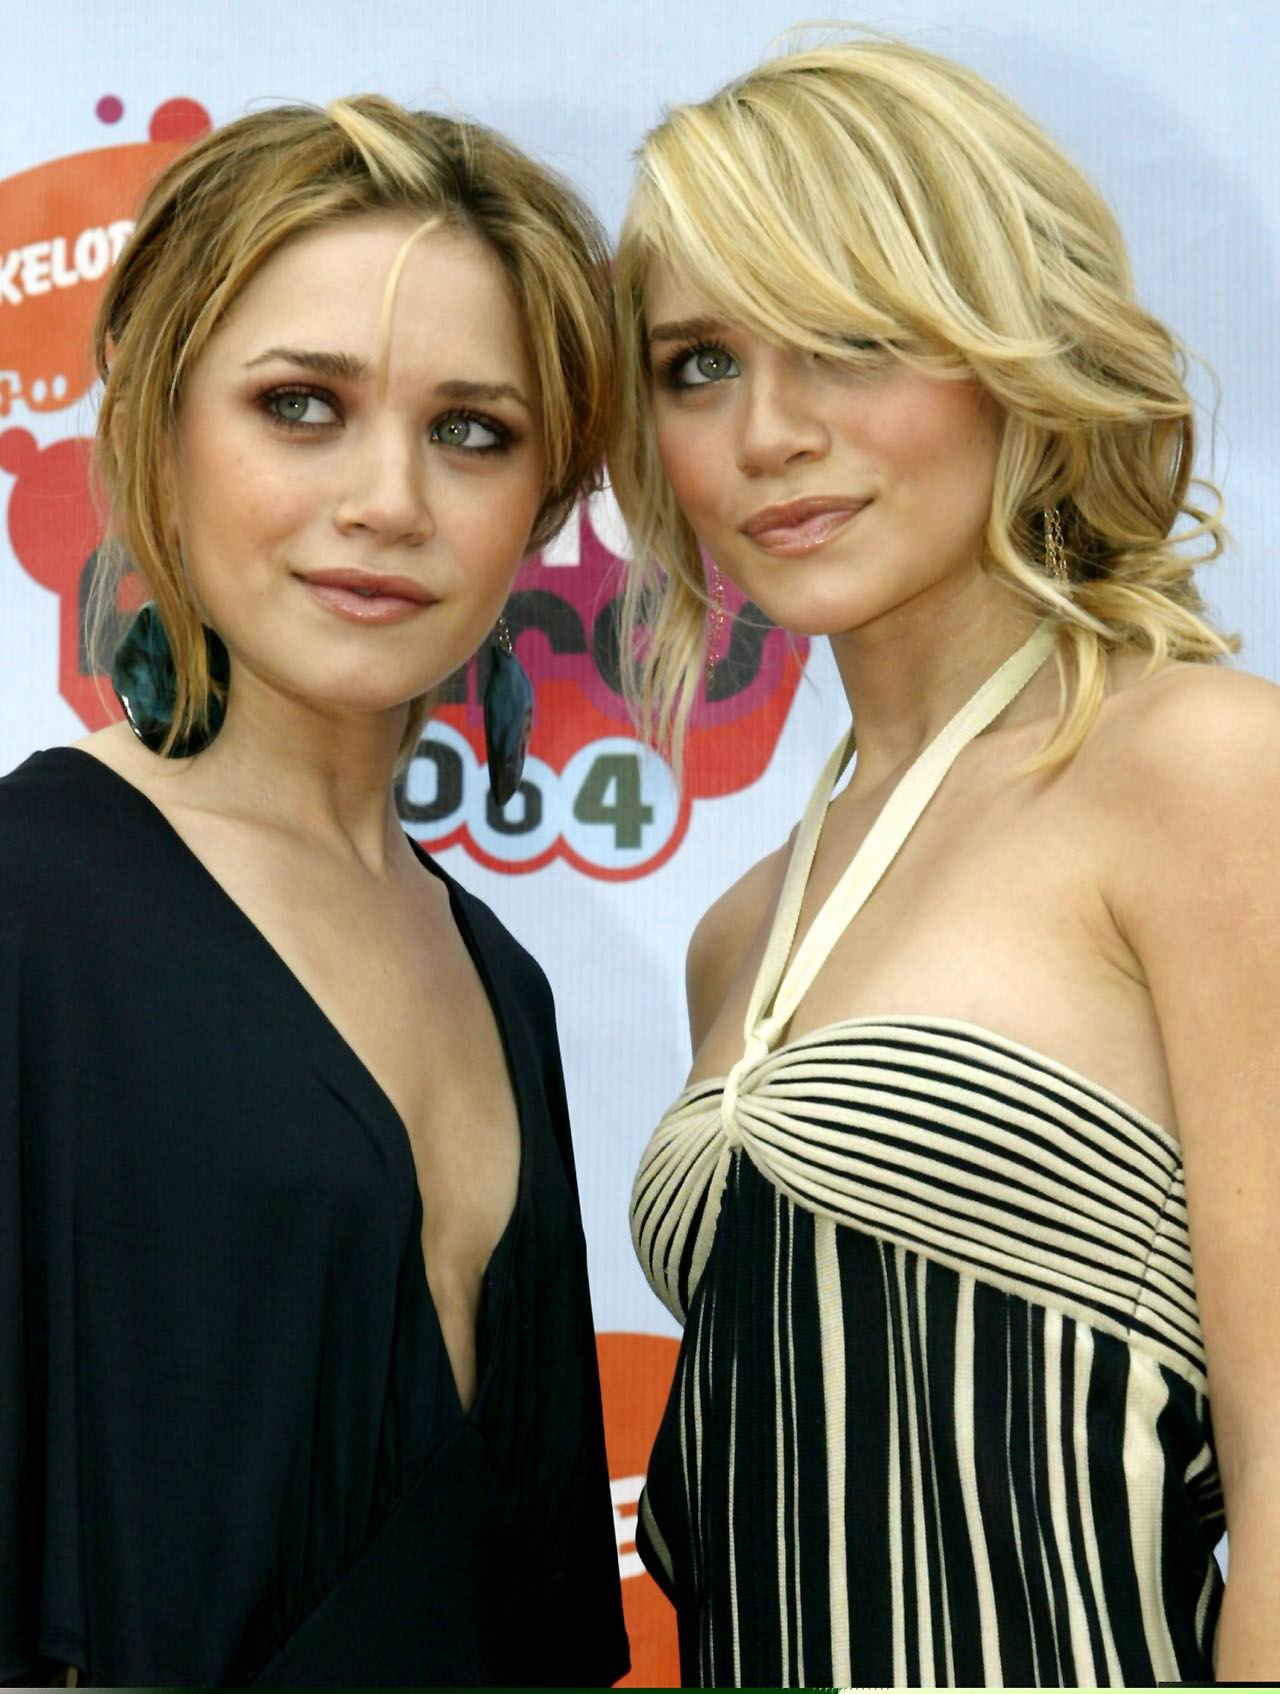 nude-photos-of-the-olsen-twins-little-kim-free-nude